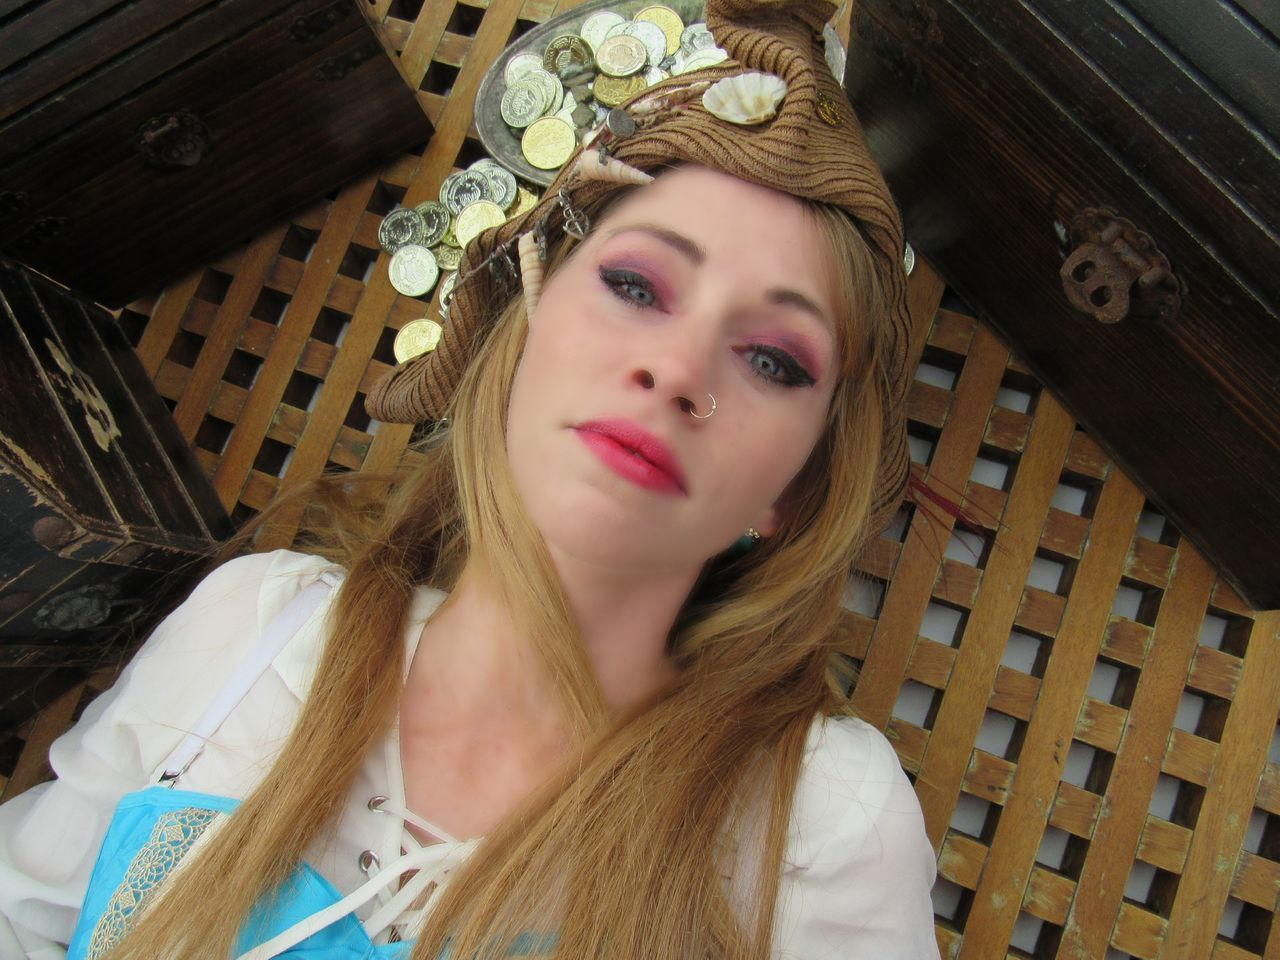 Overhead View Of Woman With Make-Up Lying On Table